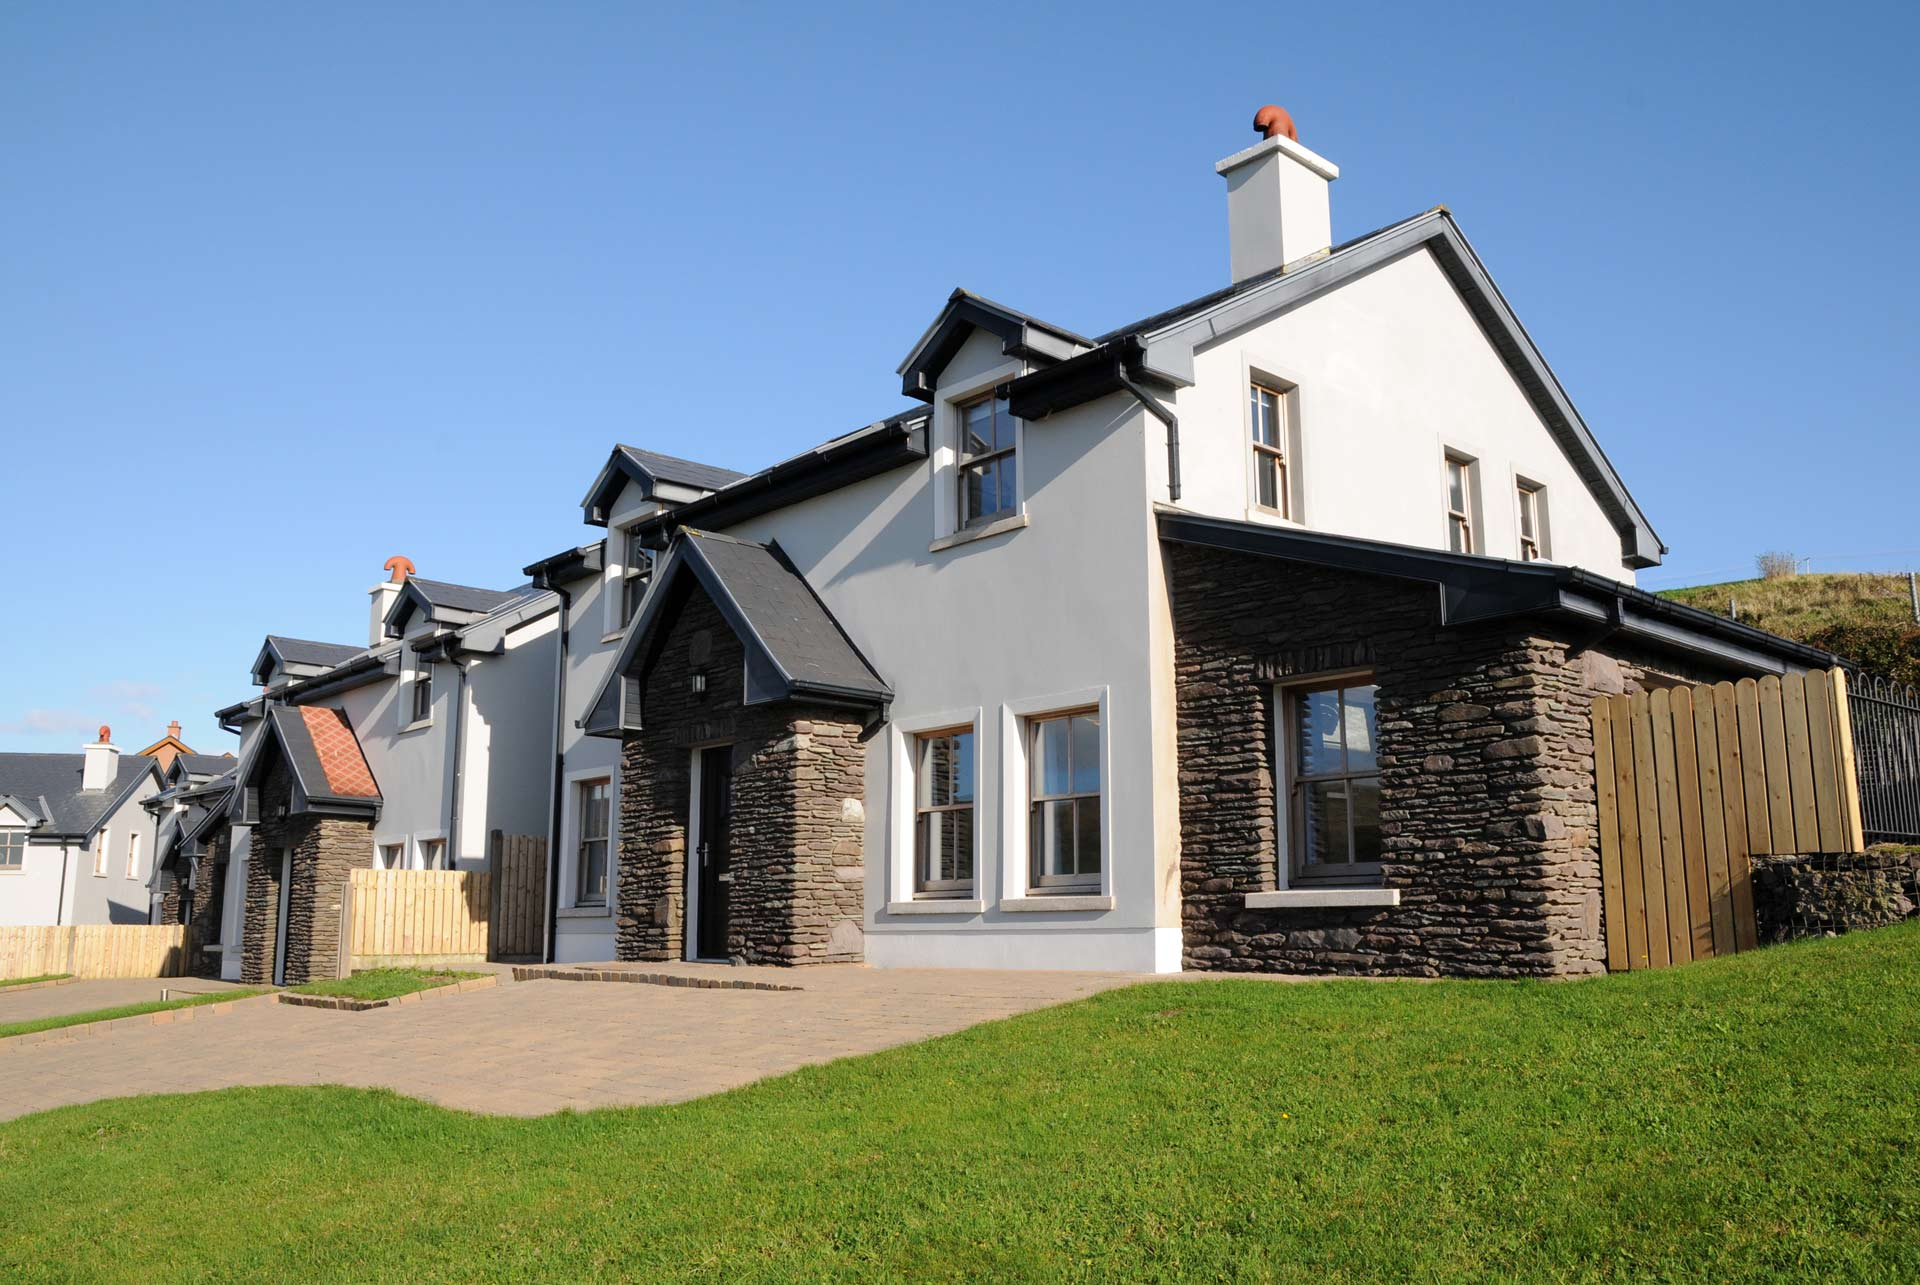 Luxury self catering family holiday homes in Dingle, kerry, Ireland